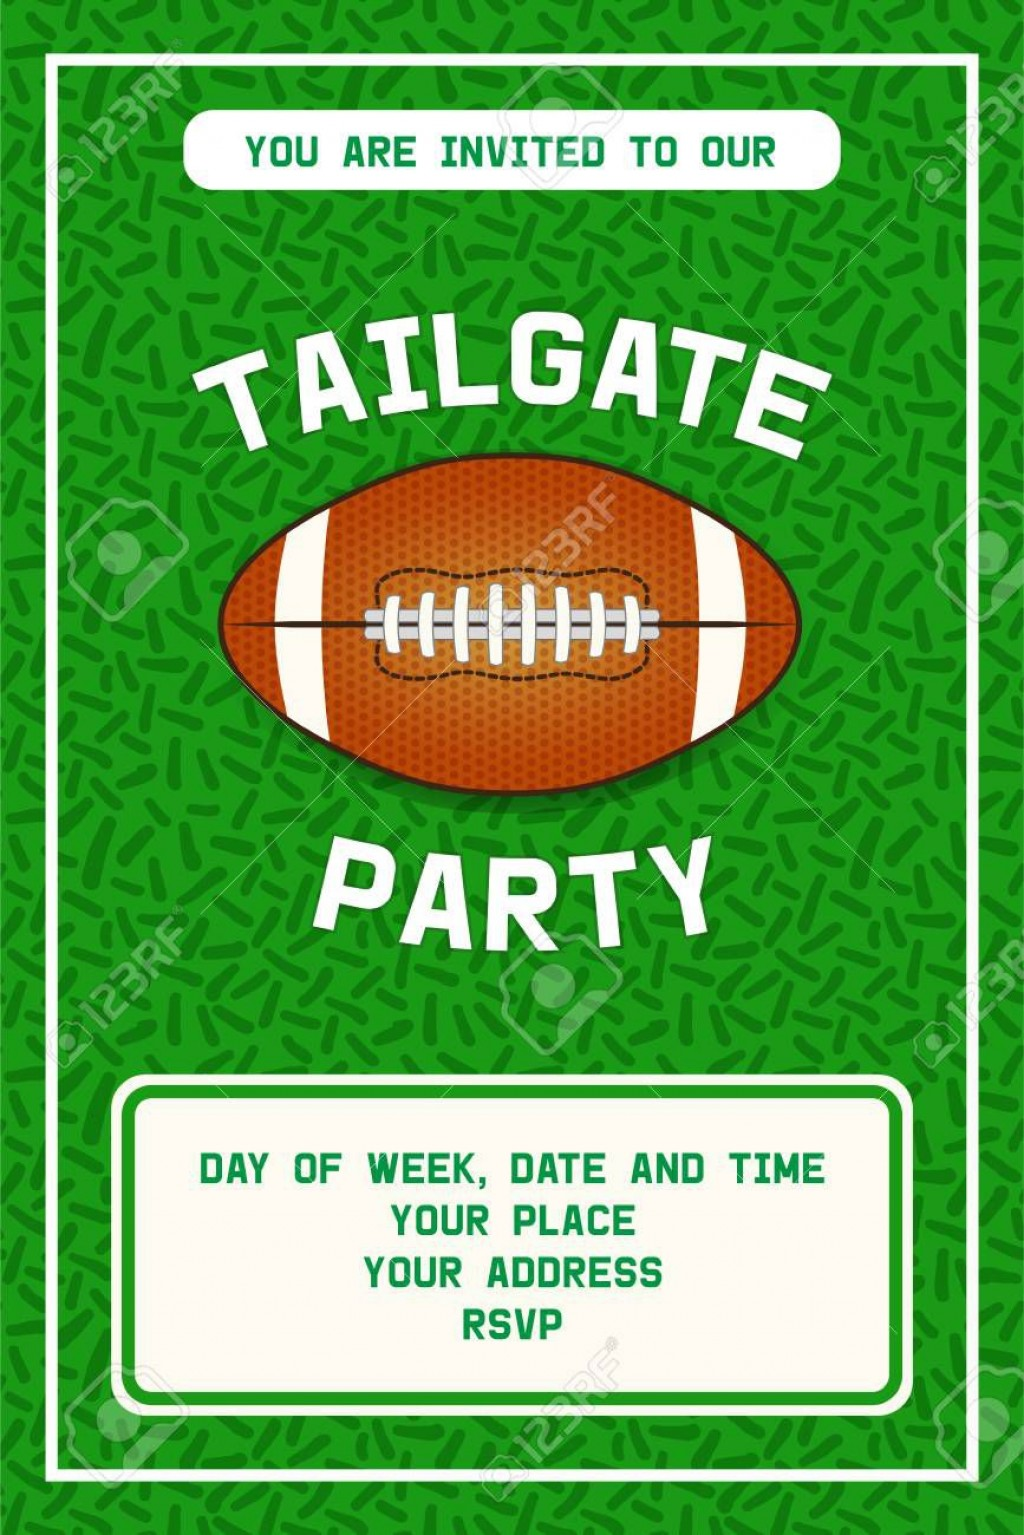 001 Shocking Free Tailgate Party Flyer Template Download Photo Large